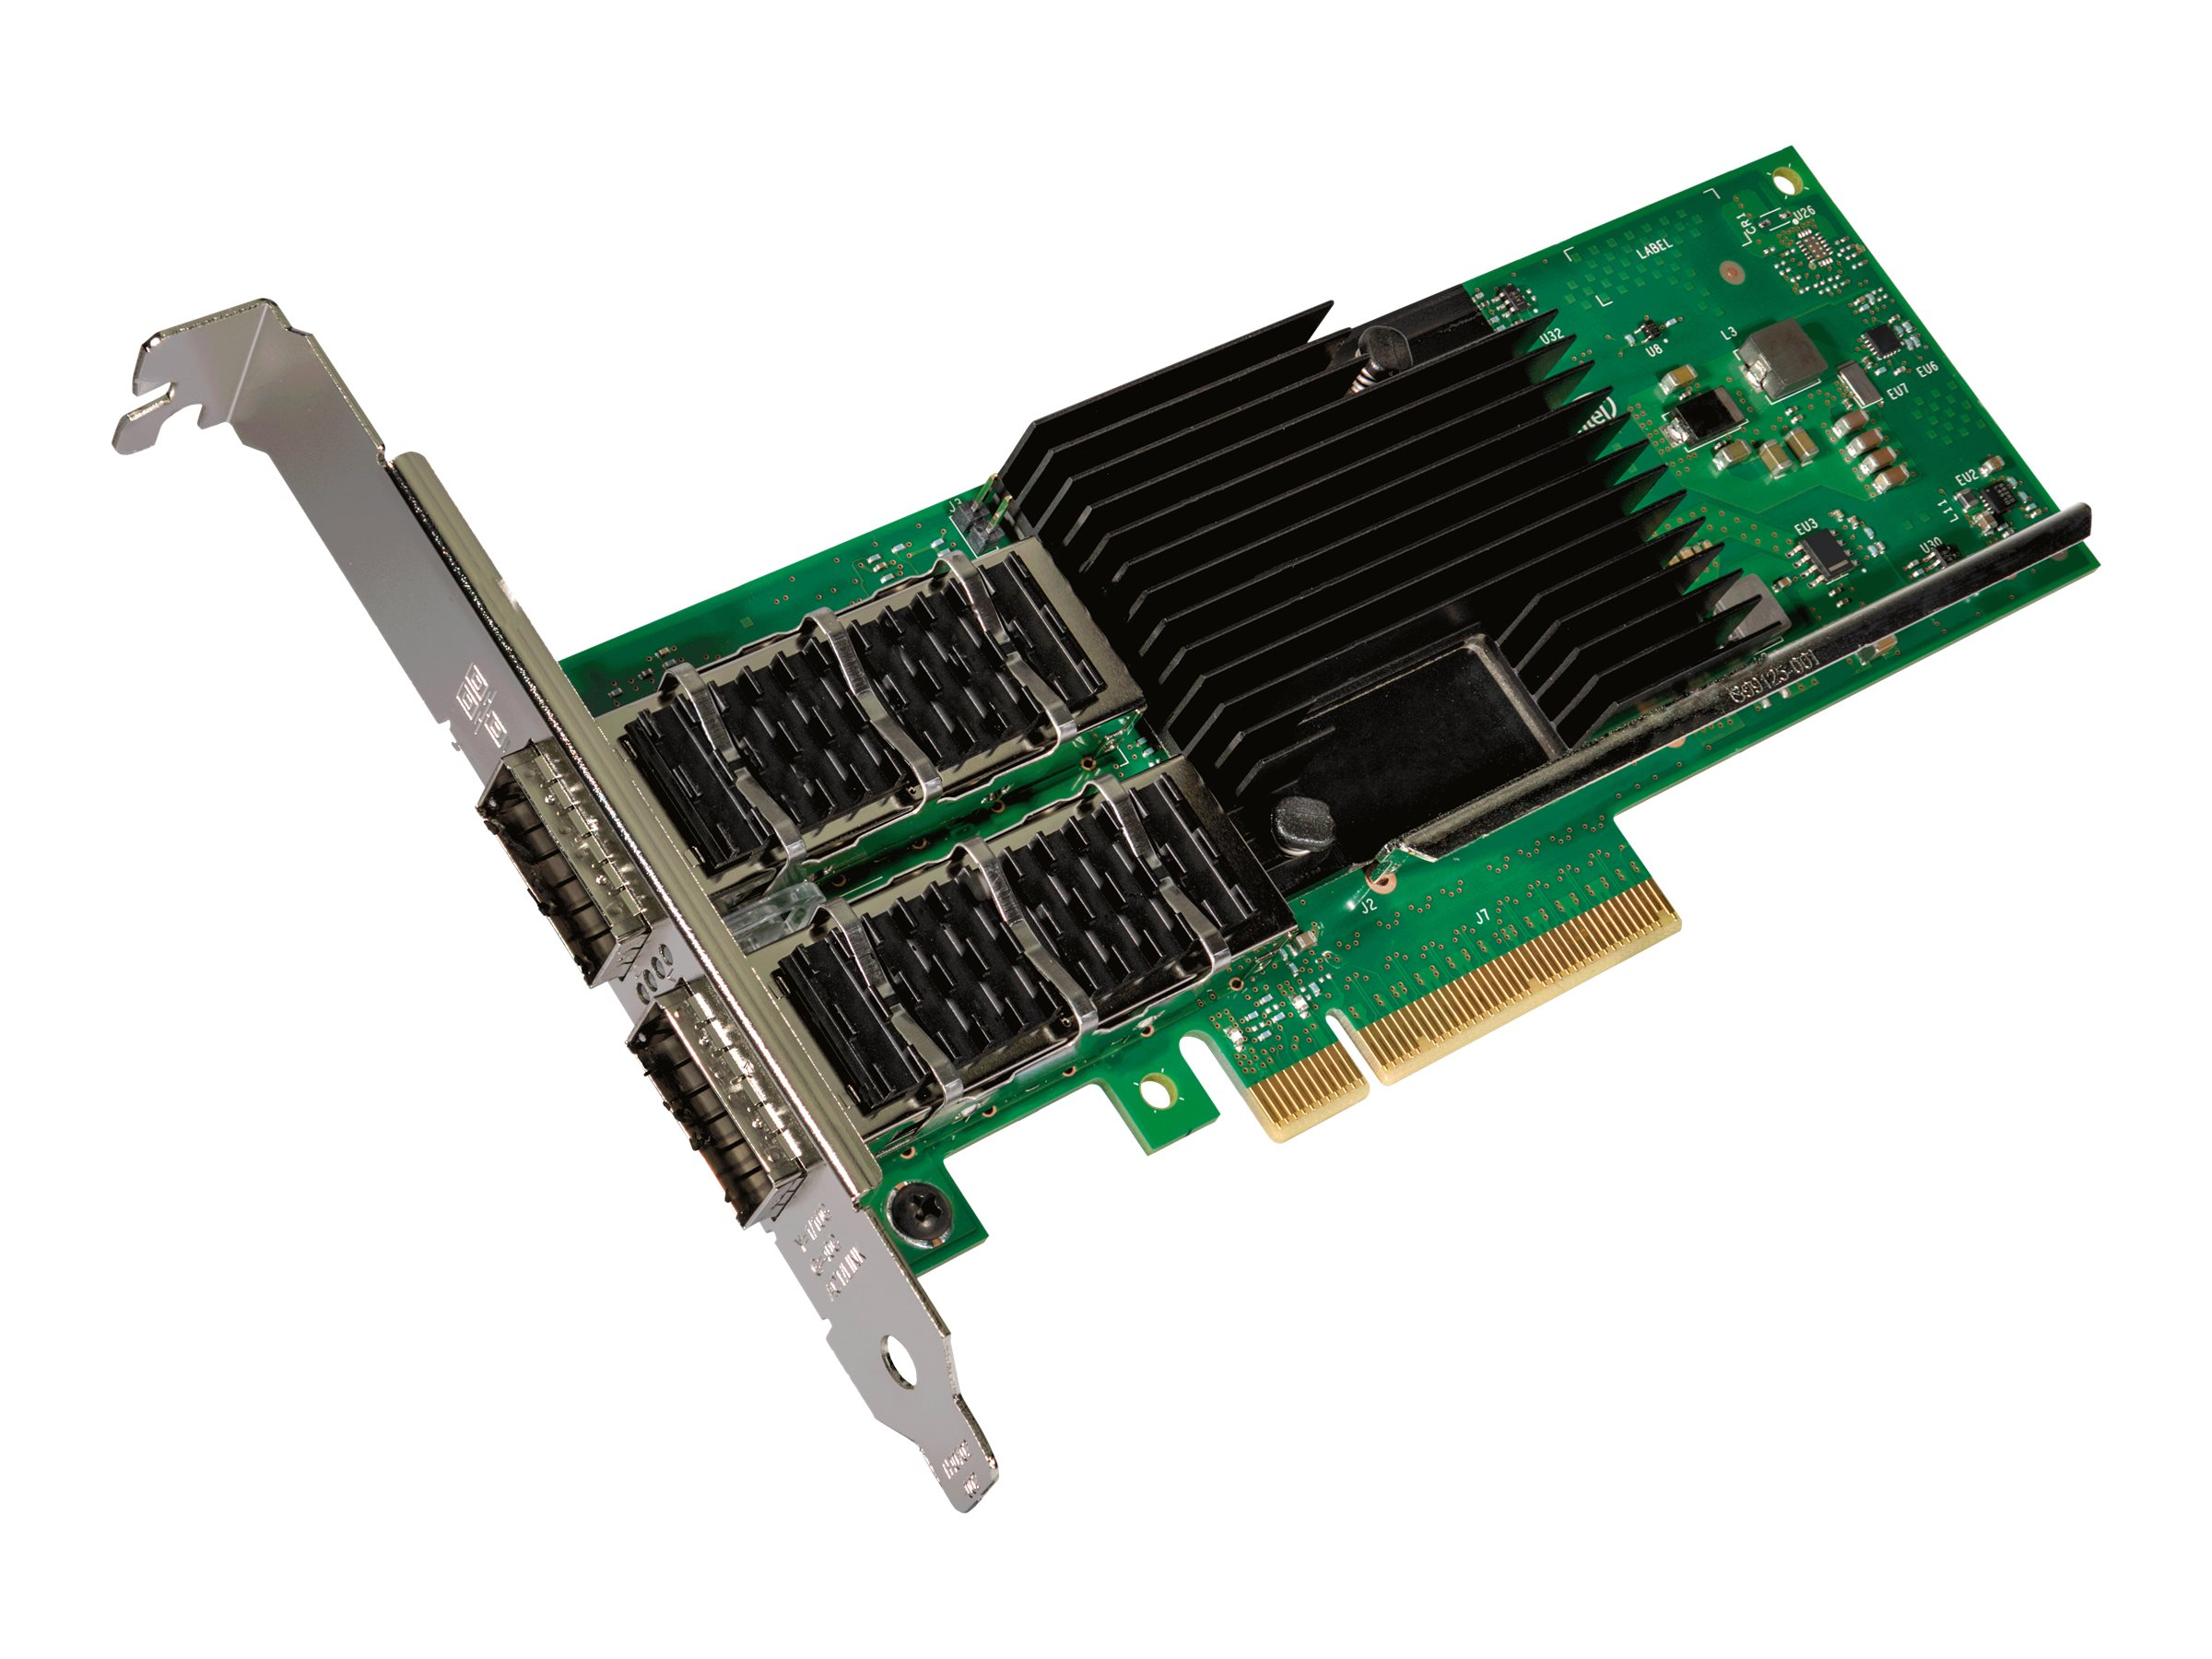 Intel Ethernet Converged Network Adapter XL710-QDA2 - network adapter